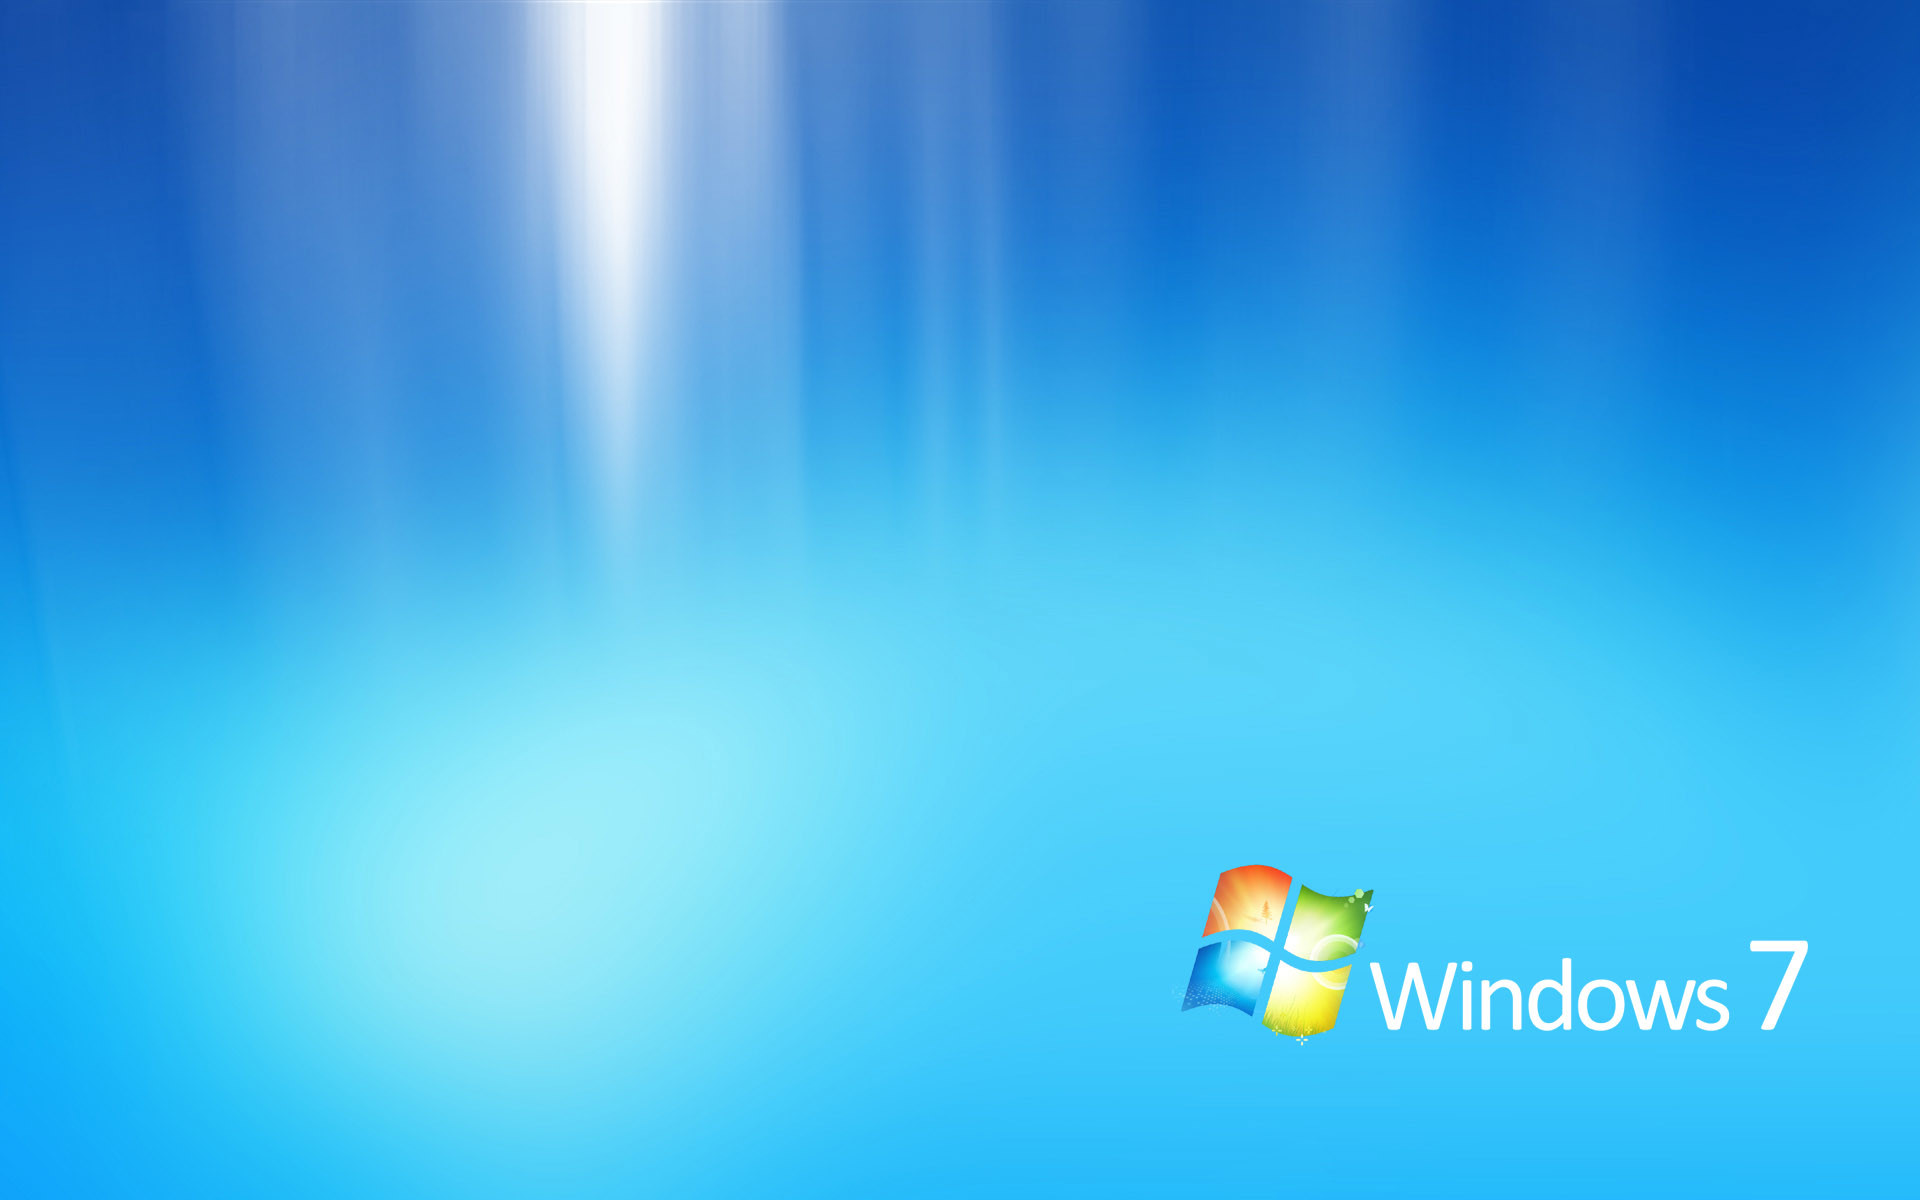 microsoft windows wallpapers by gifteddeviant - photo #5